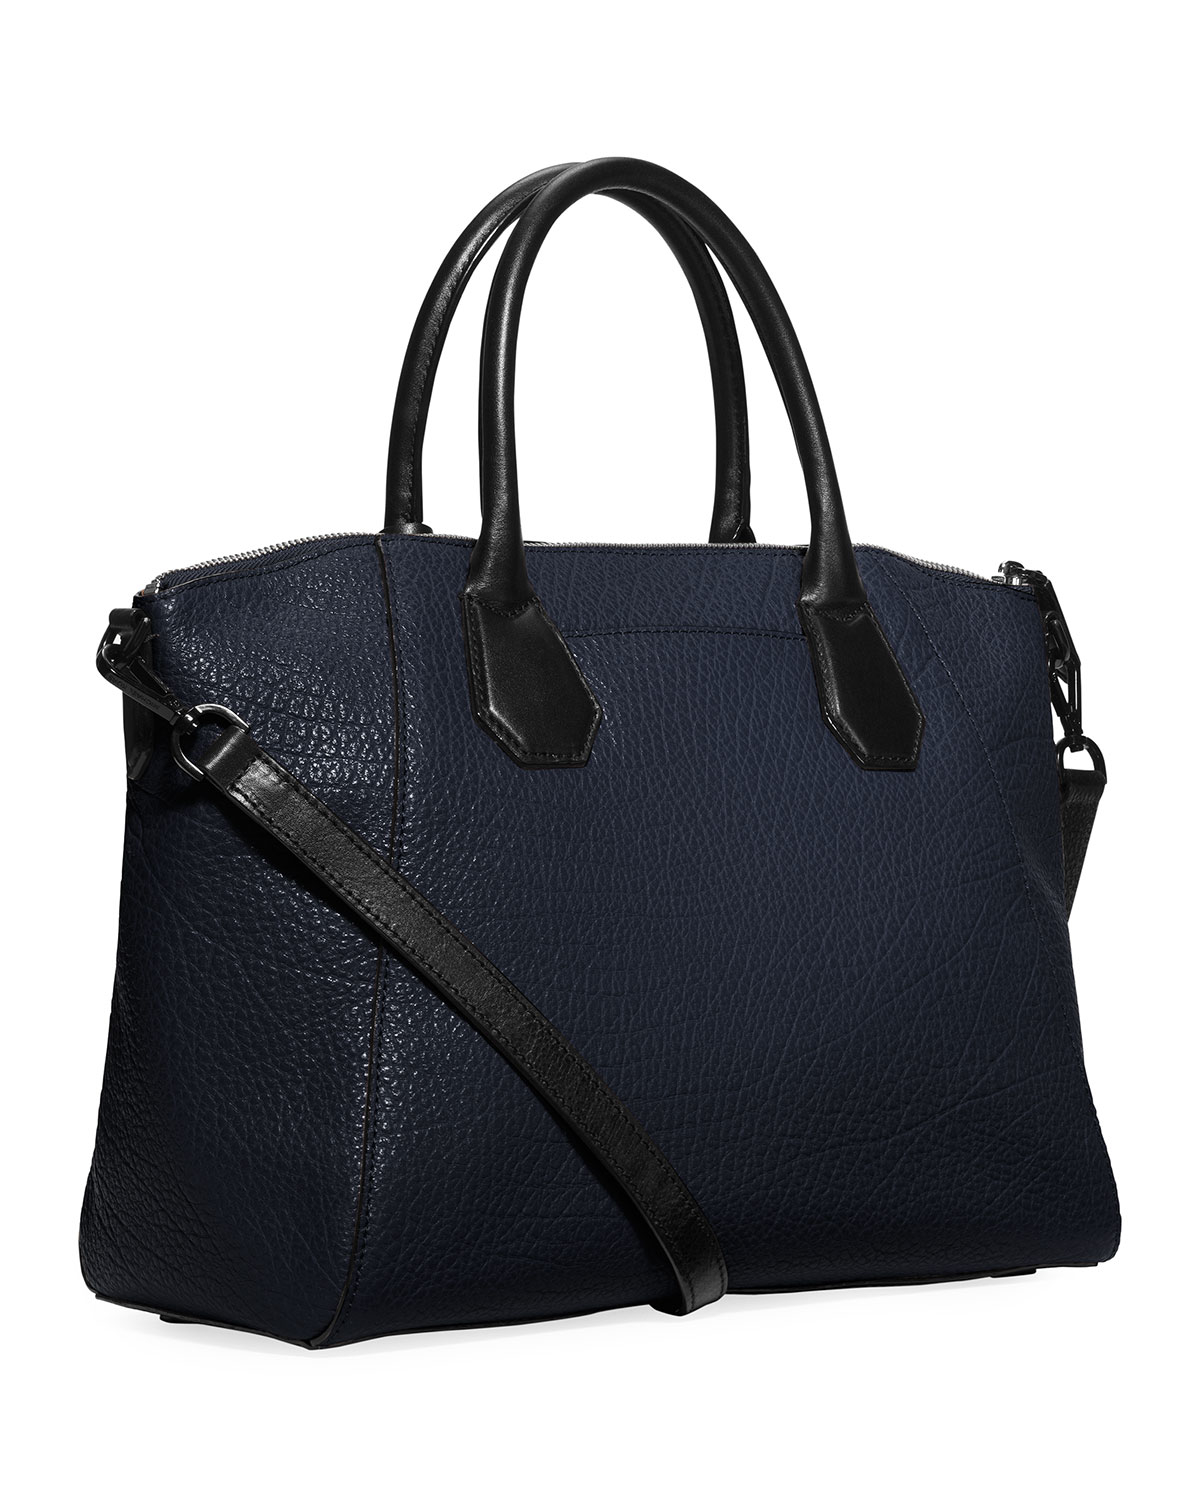 8069b5bb46a1a Lyst - MICHAEL Michael Kors Campbell Large Satchel Bag in Blue